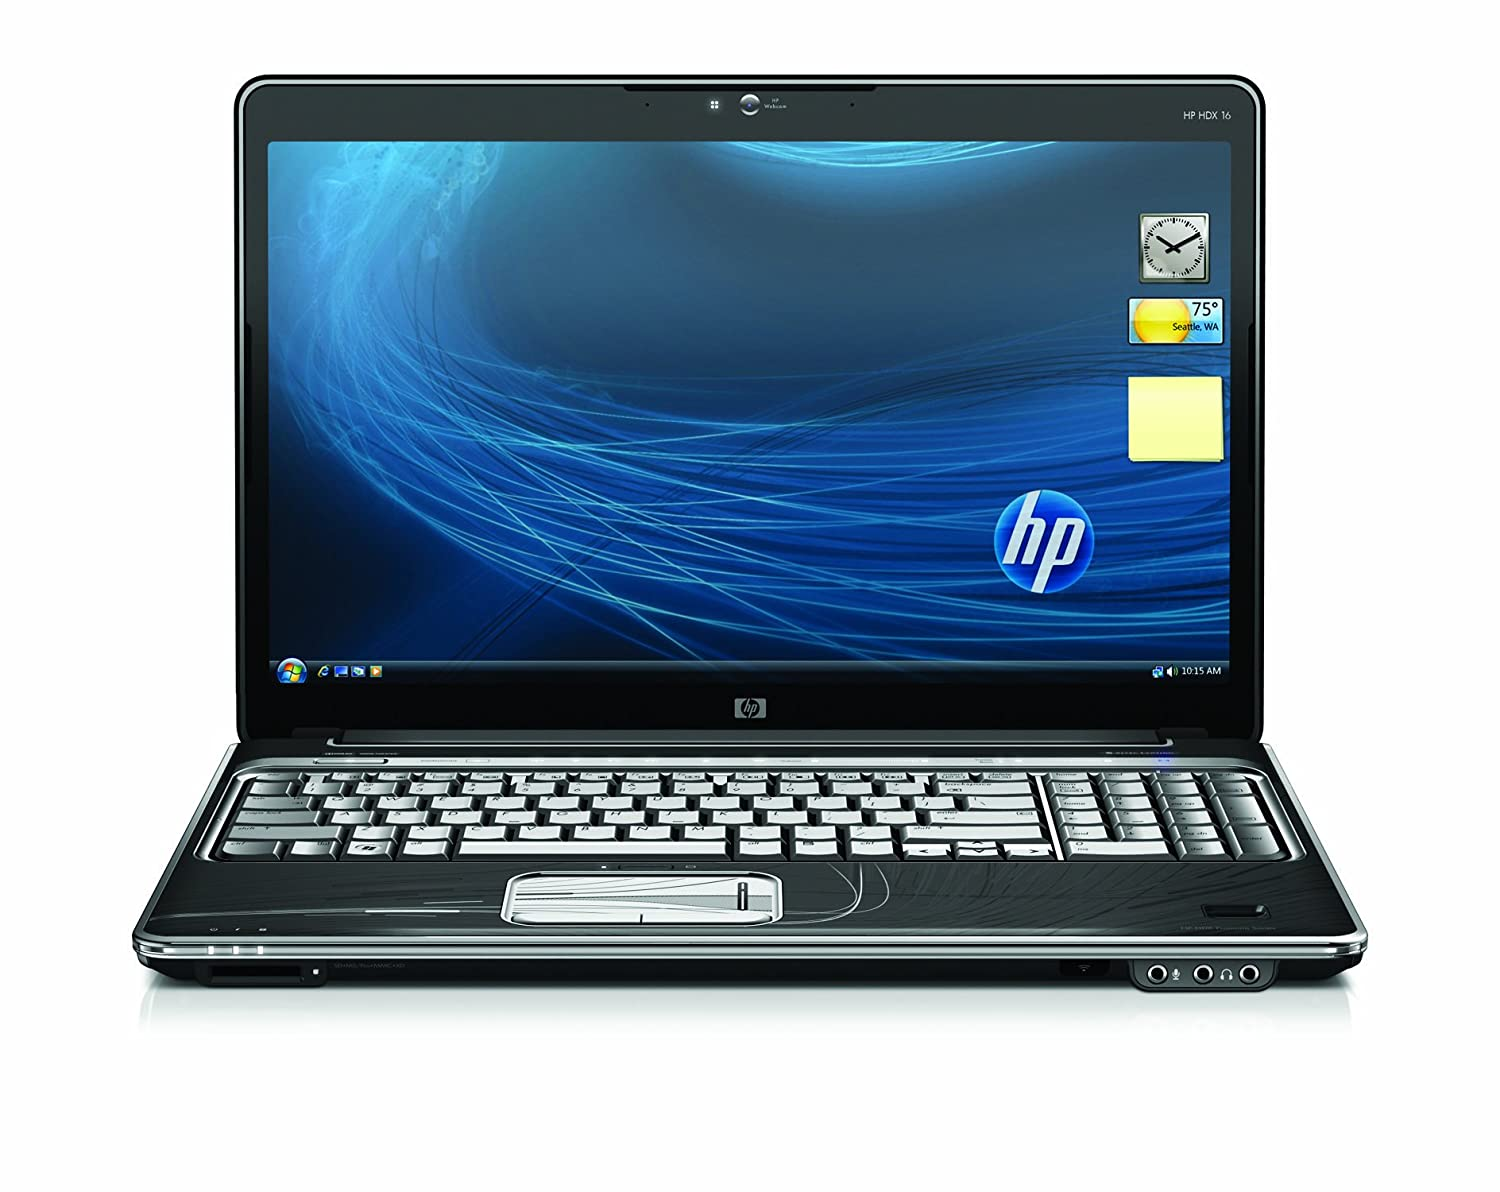 hp hdx 16 manual daily instruction manual guides u2022 rh testingwordpress co hp notebook disassembly guide hp notebook reference guide